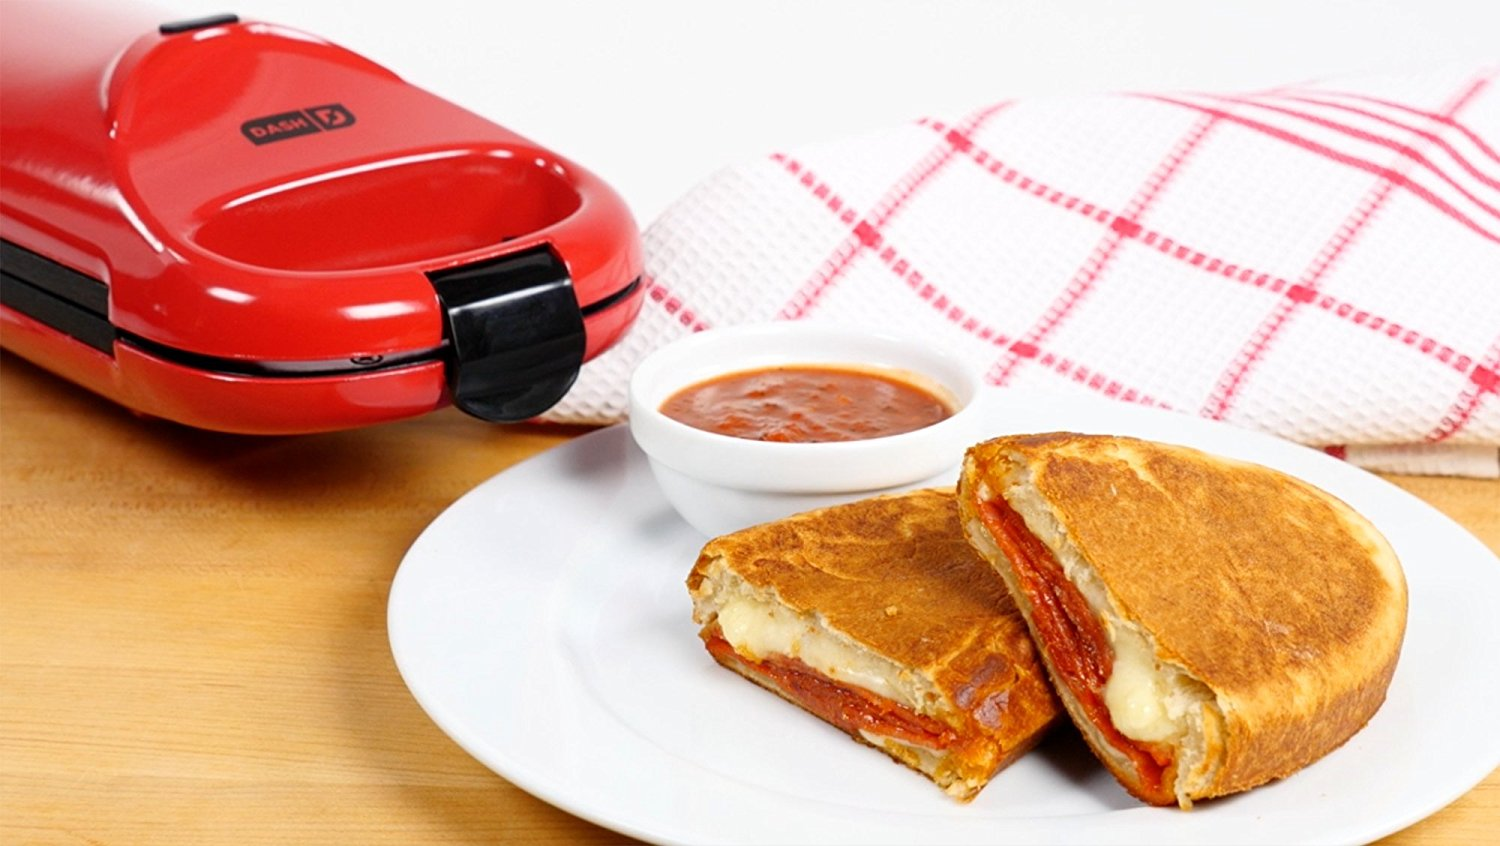 Dash Nonstick Omelette Maker